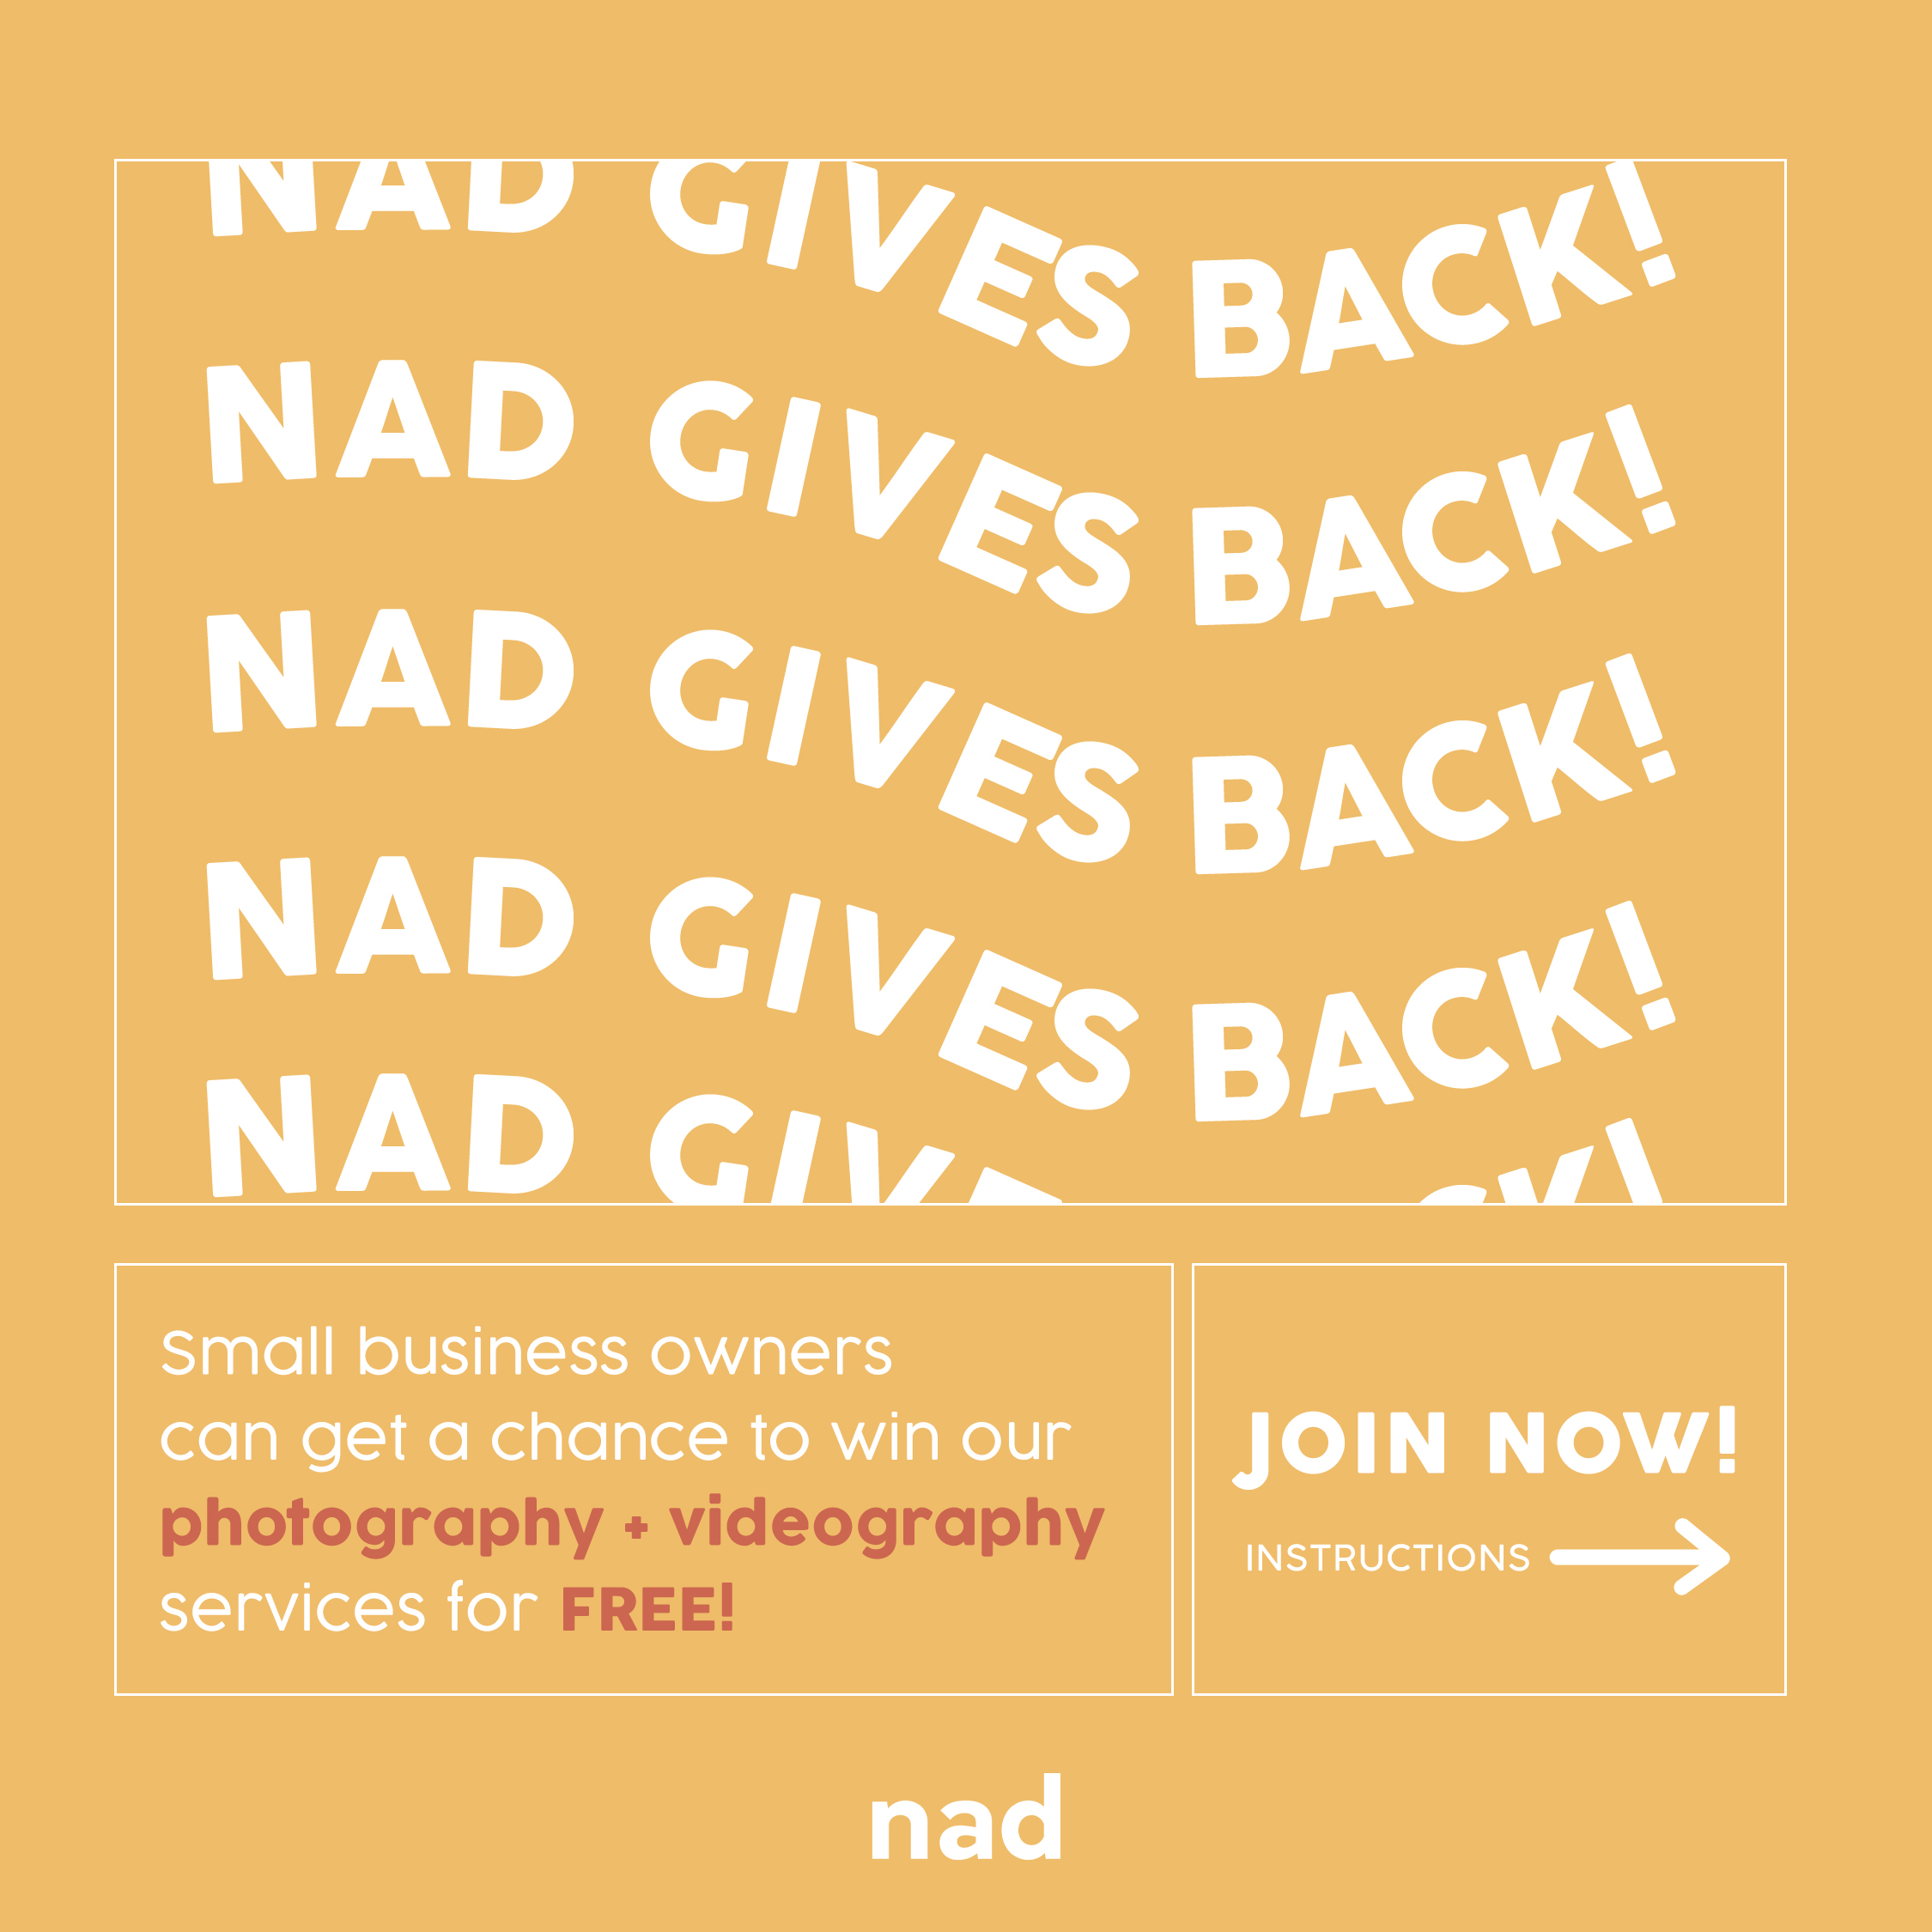 NADGivesBack Instructions